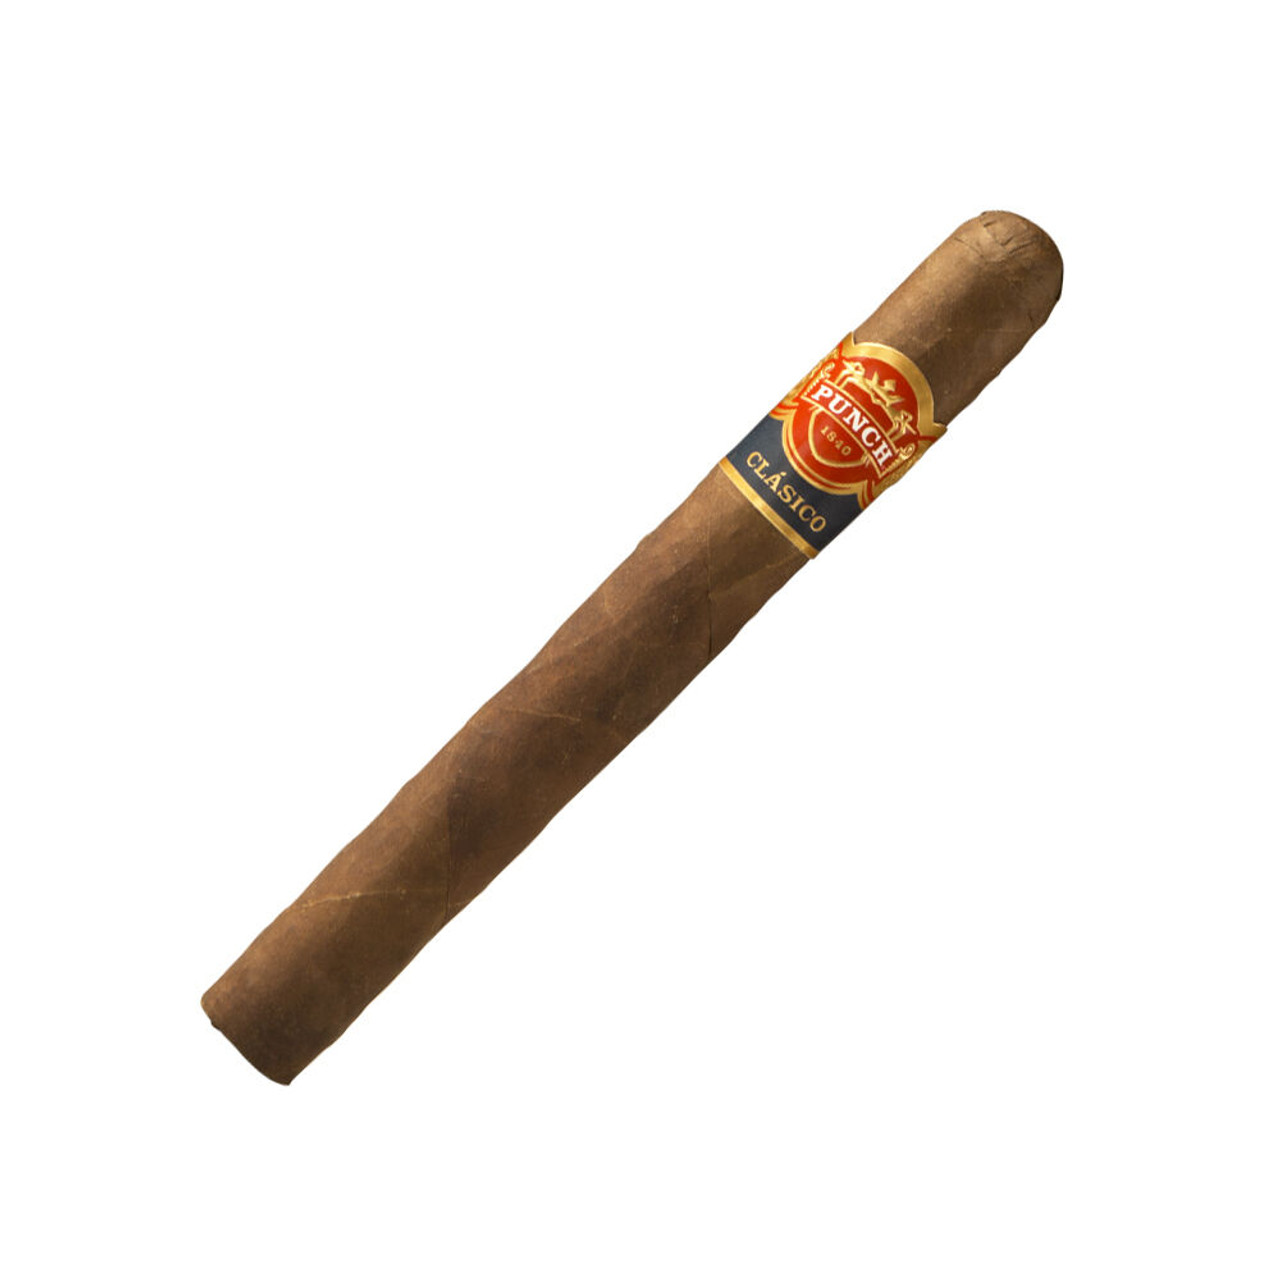 Punch Punch Cigars - 6.25 x 44 (Pack of 5)